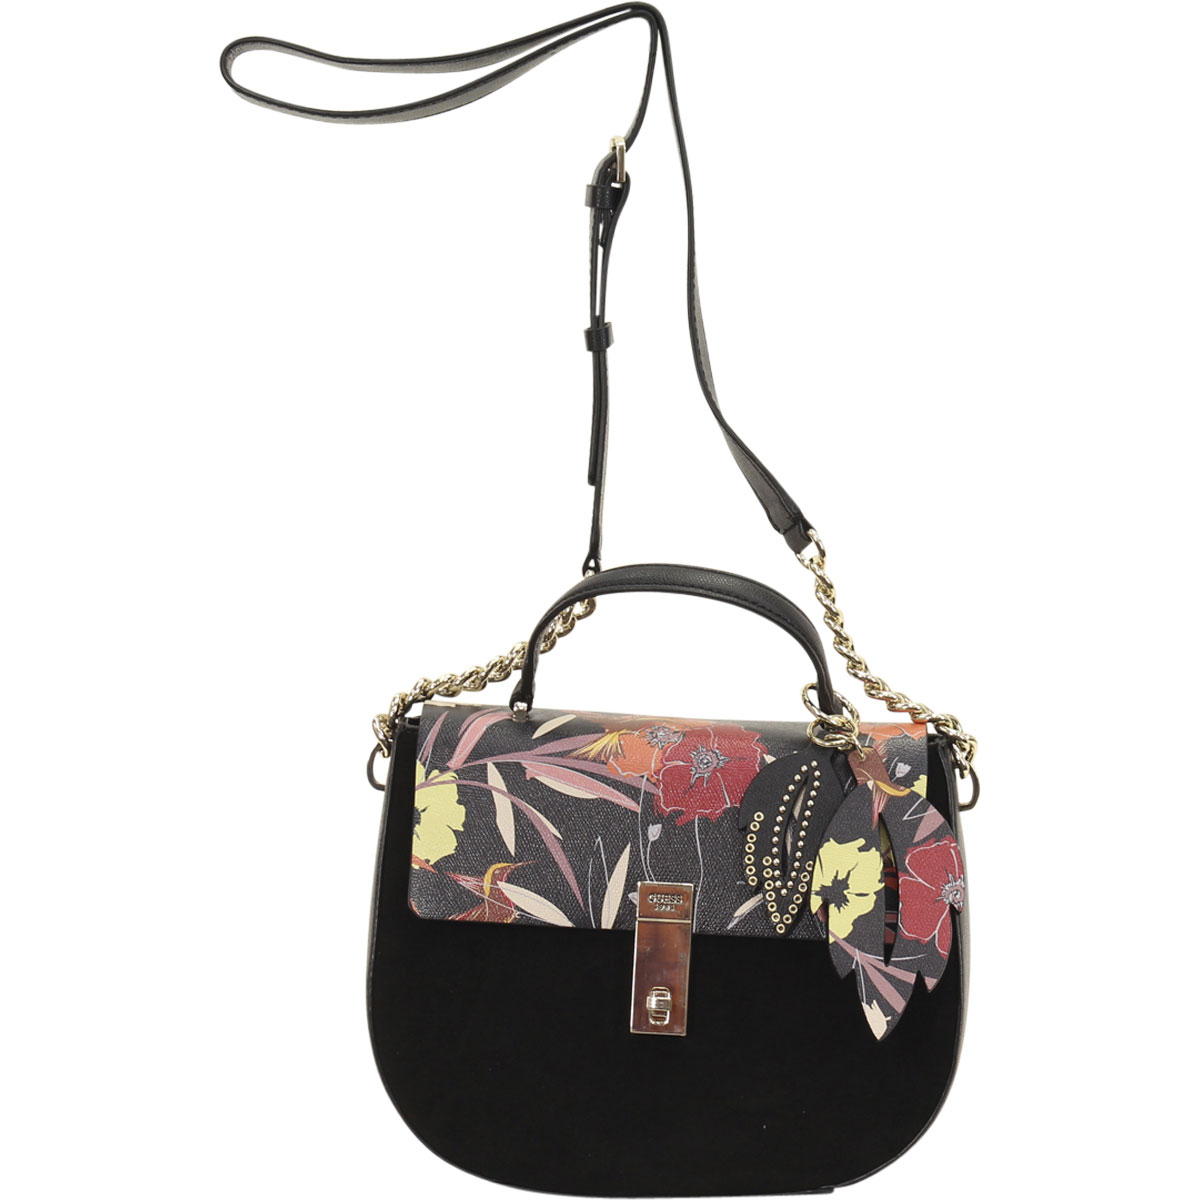 07ffd07c5b1a Guess Women s McKenna Black Floral Top Handle Crossbody Handbag ...